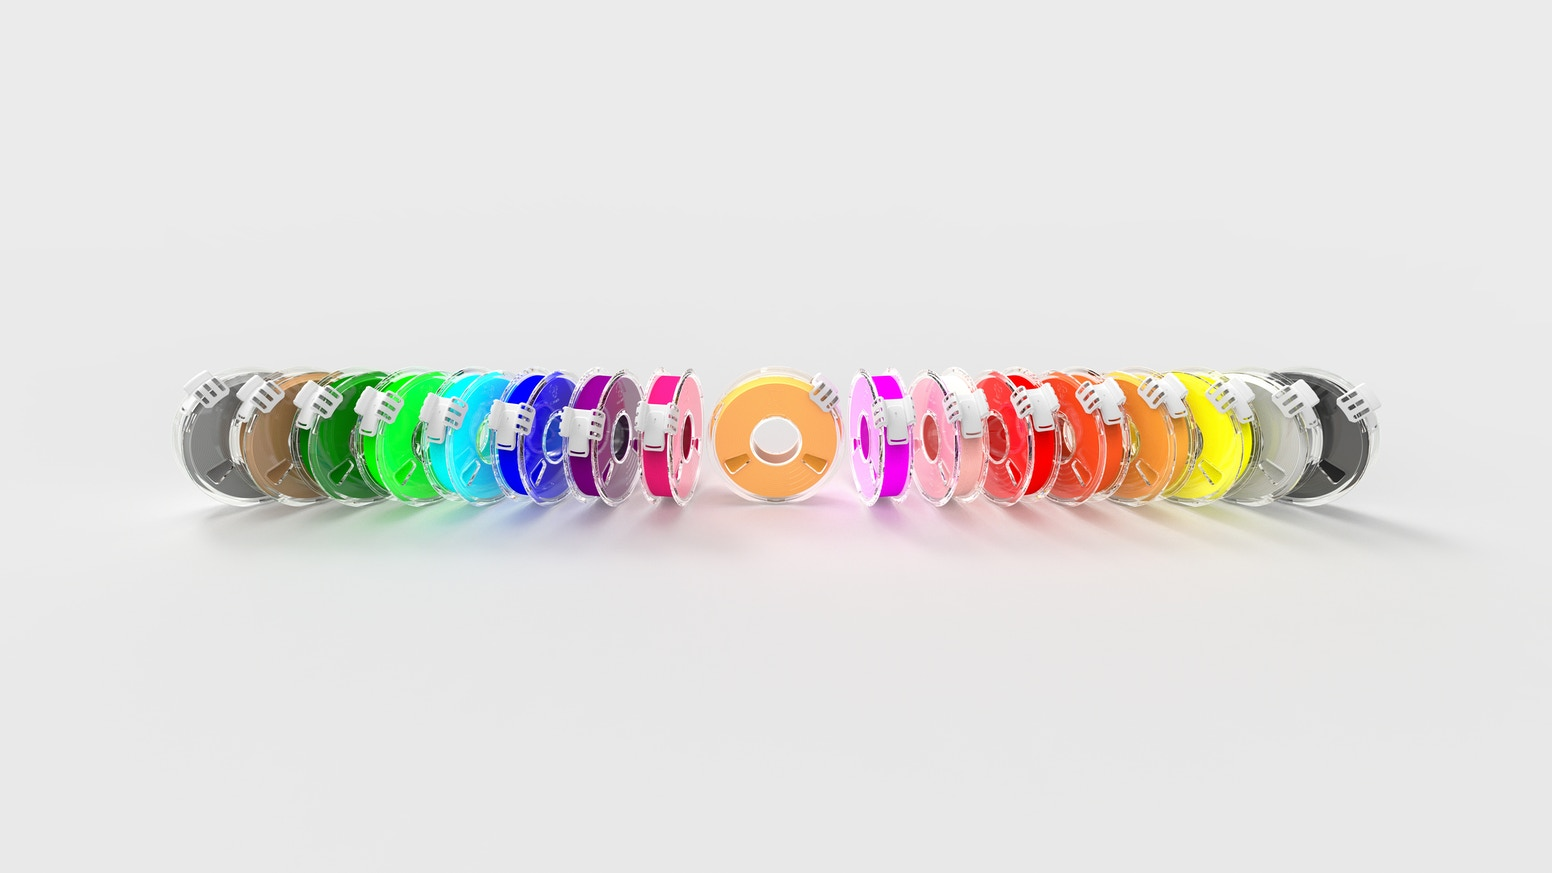 tangle free 3d printing with furling filament by furling technology